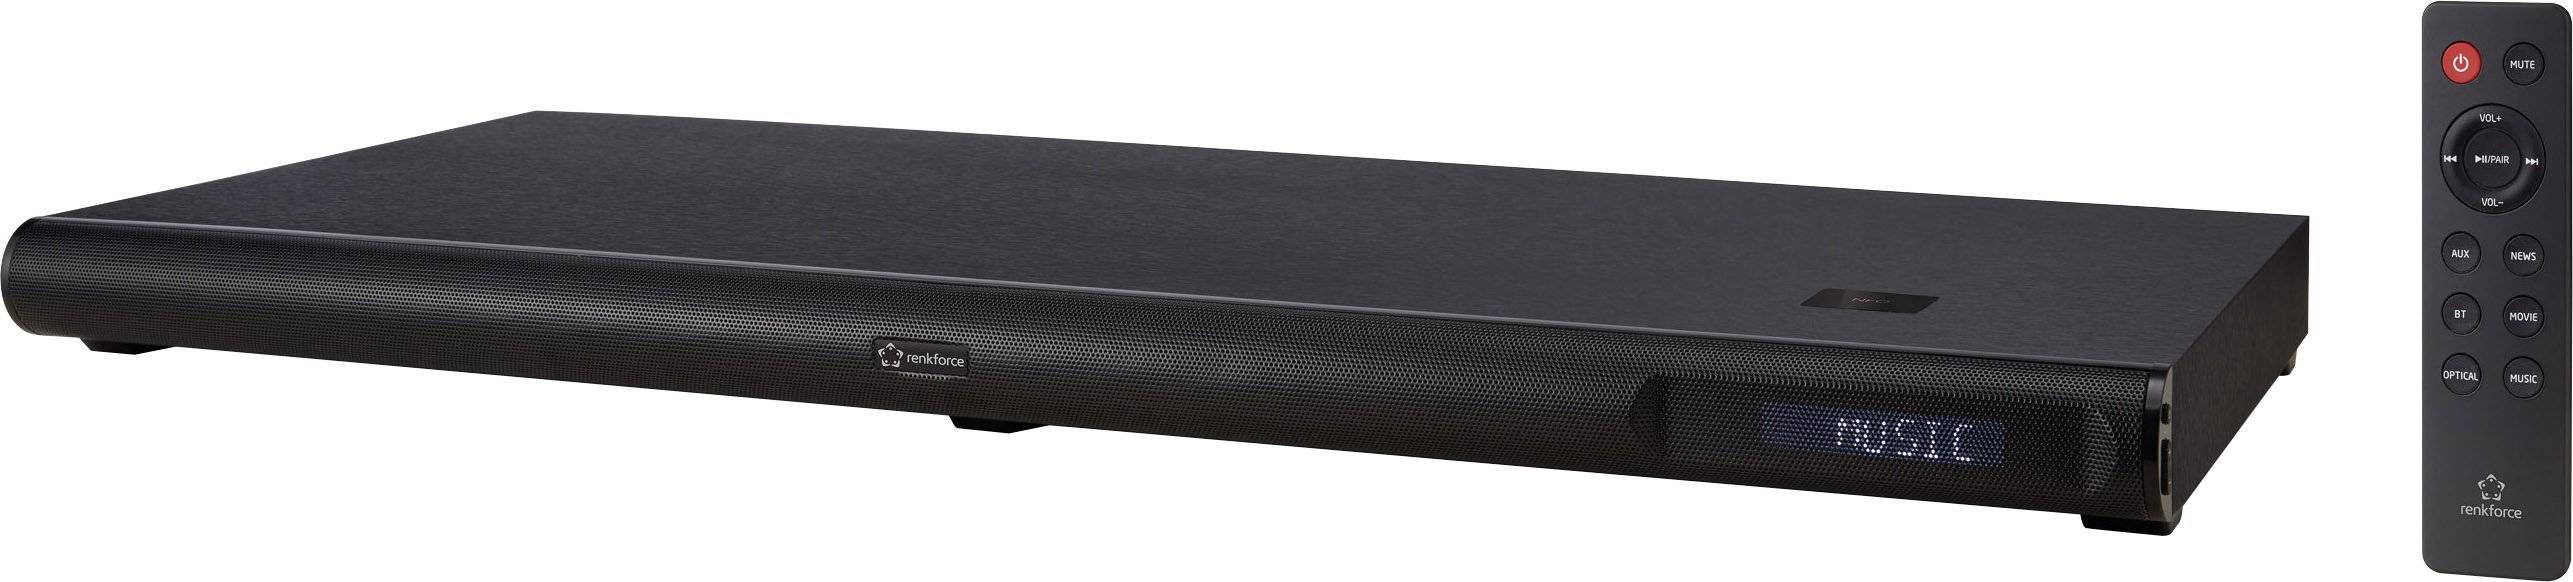 Soundbase Renkforce TT318 Bluetooth®, NFC, čierna